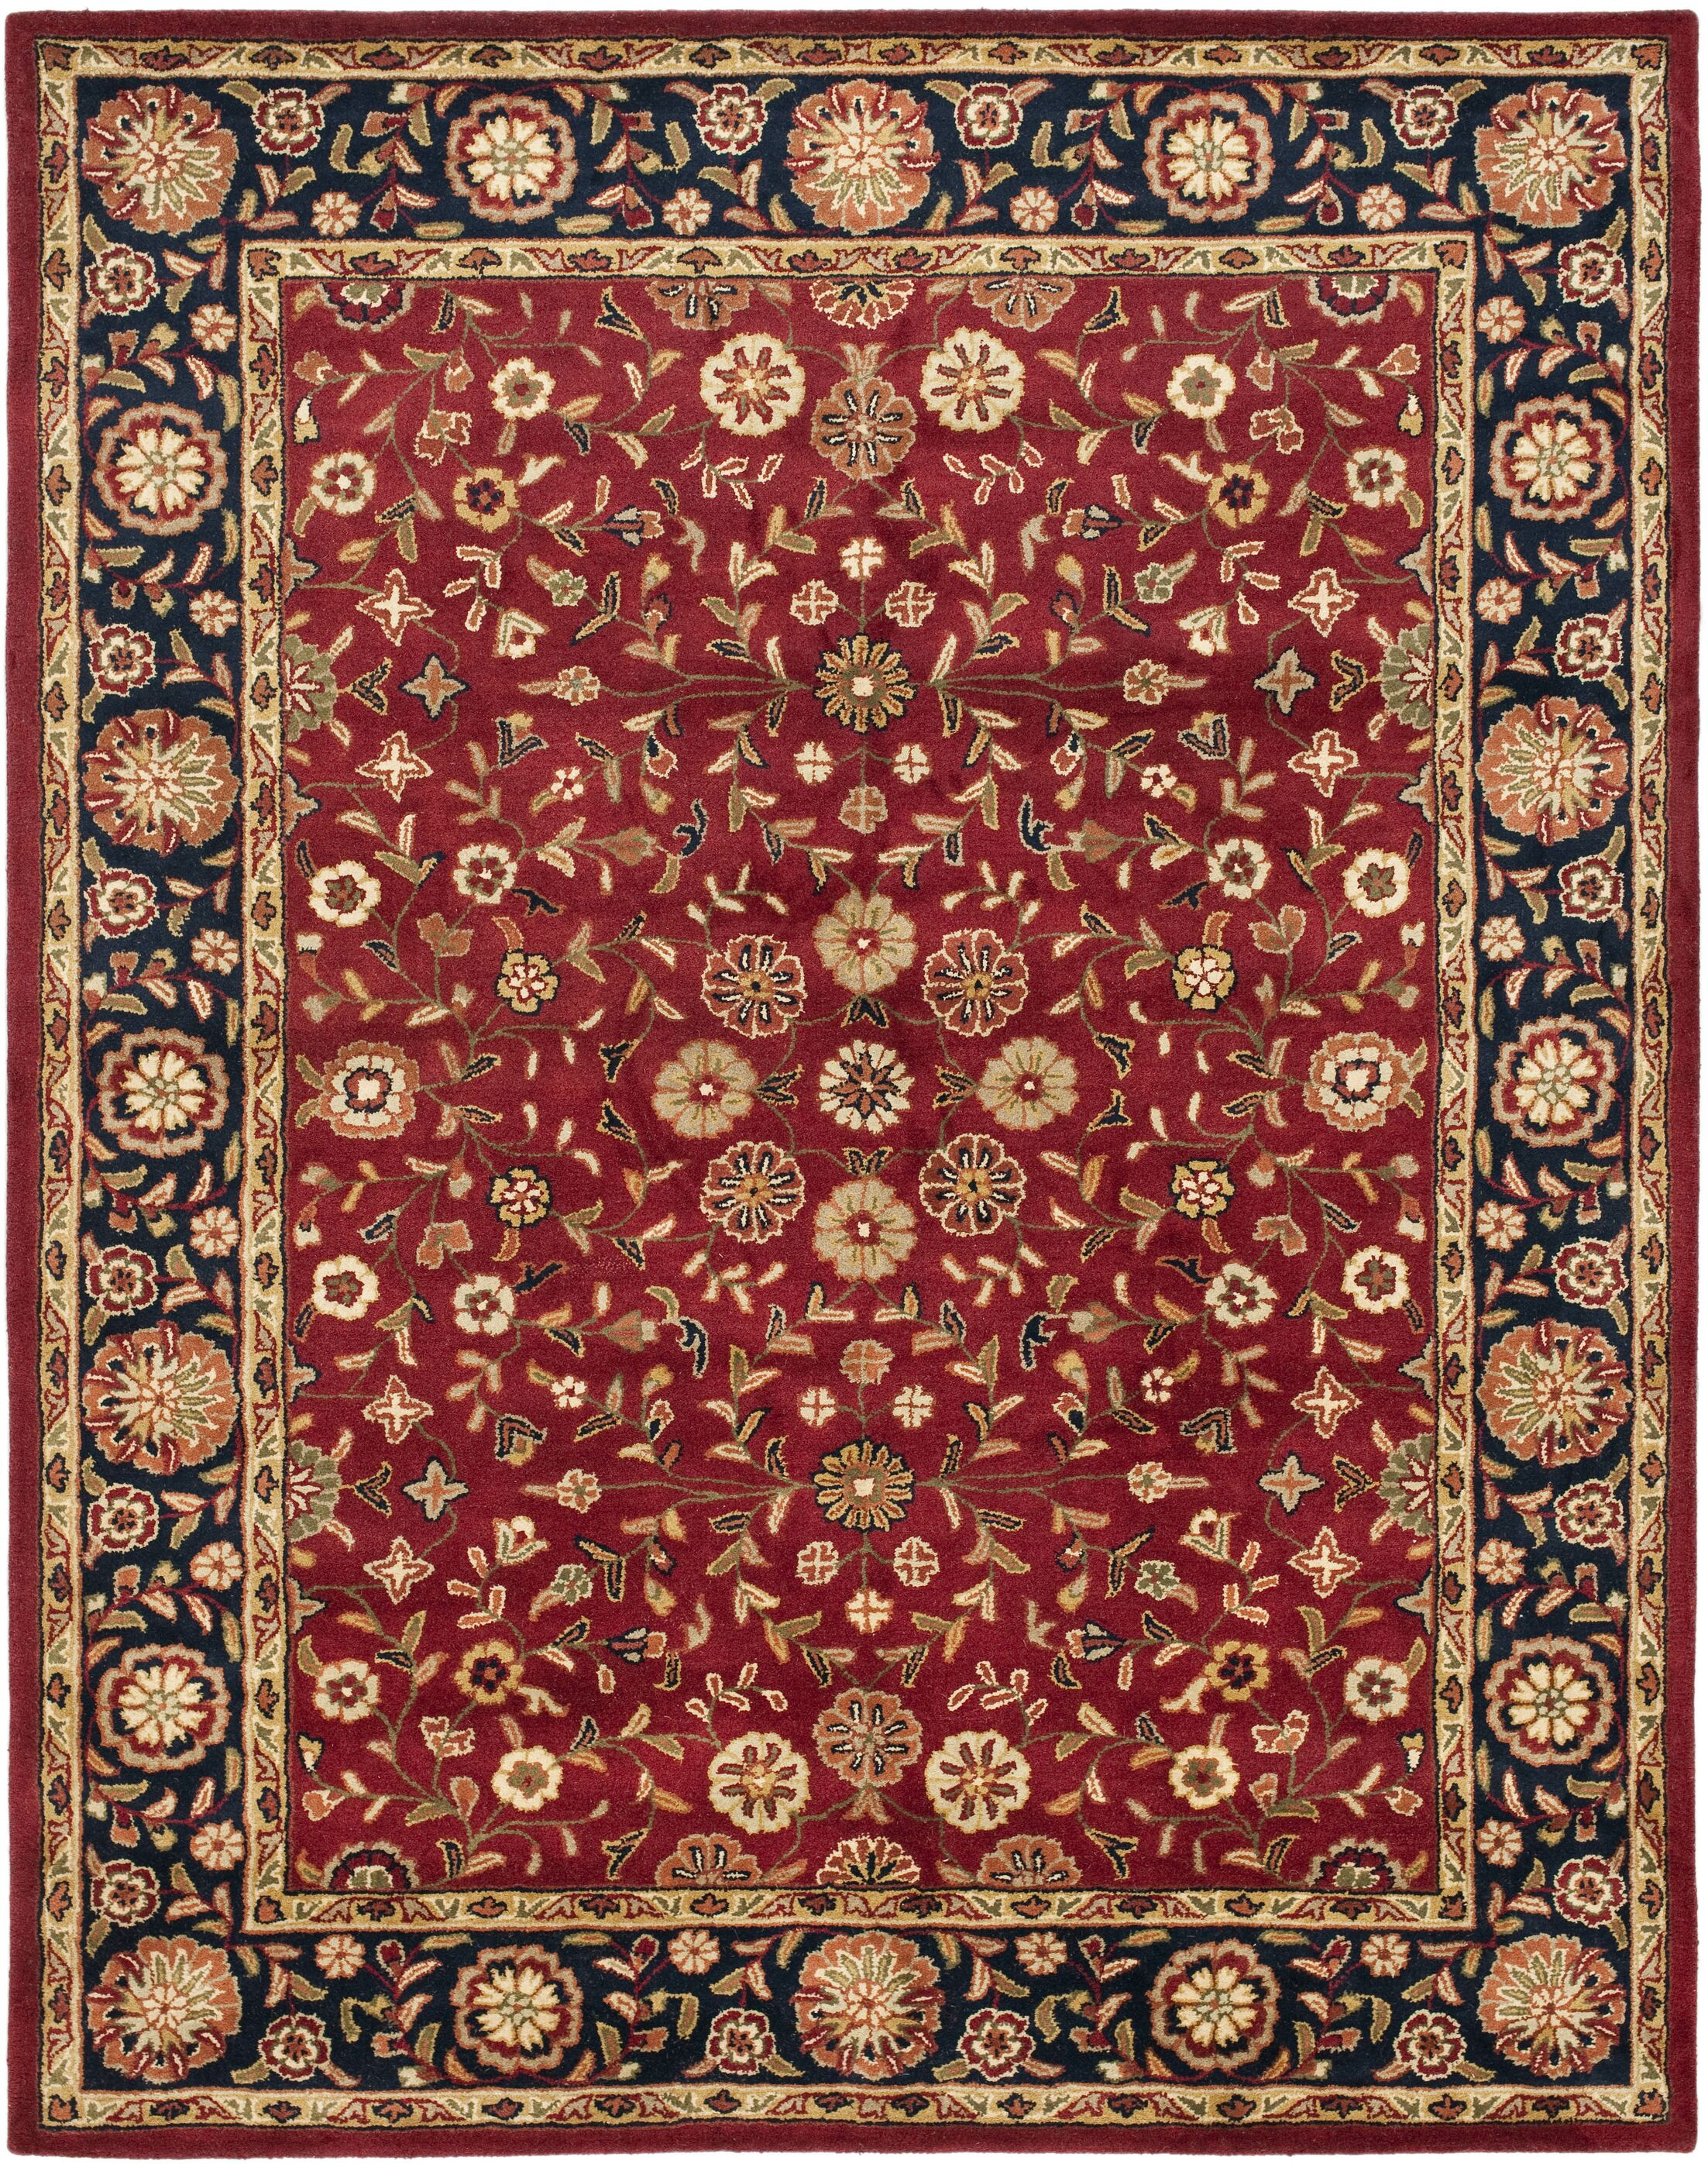 Cranmore Red/Black Floral Area Rug Rug Size: Rectangle 11' x 15'